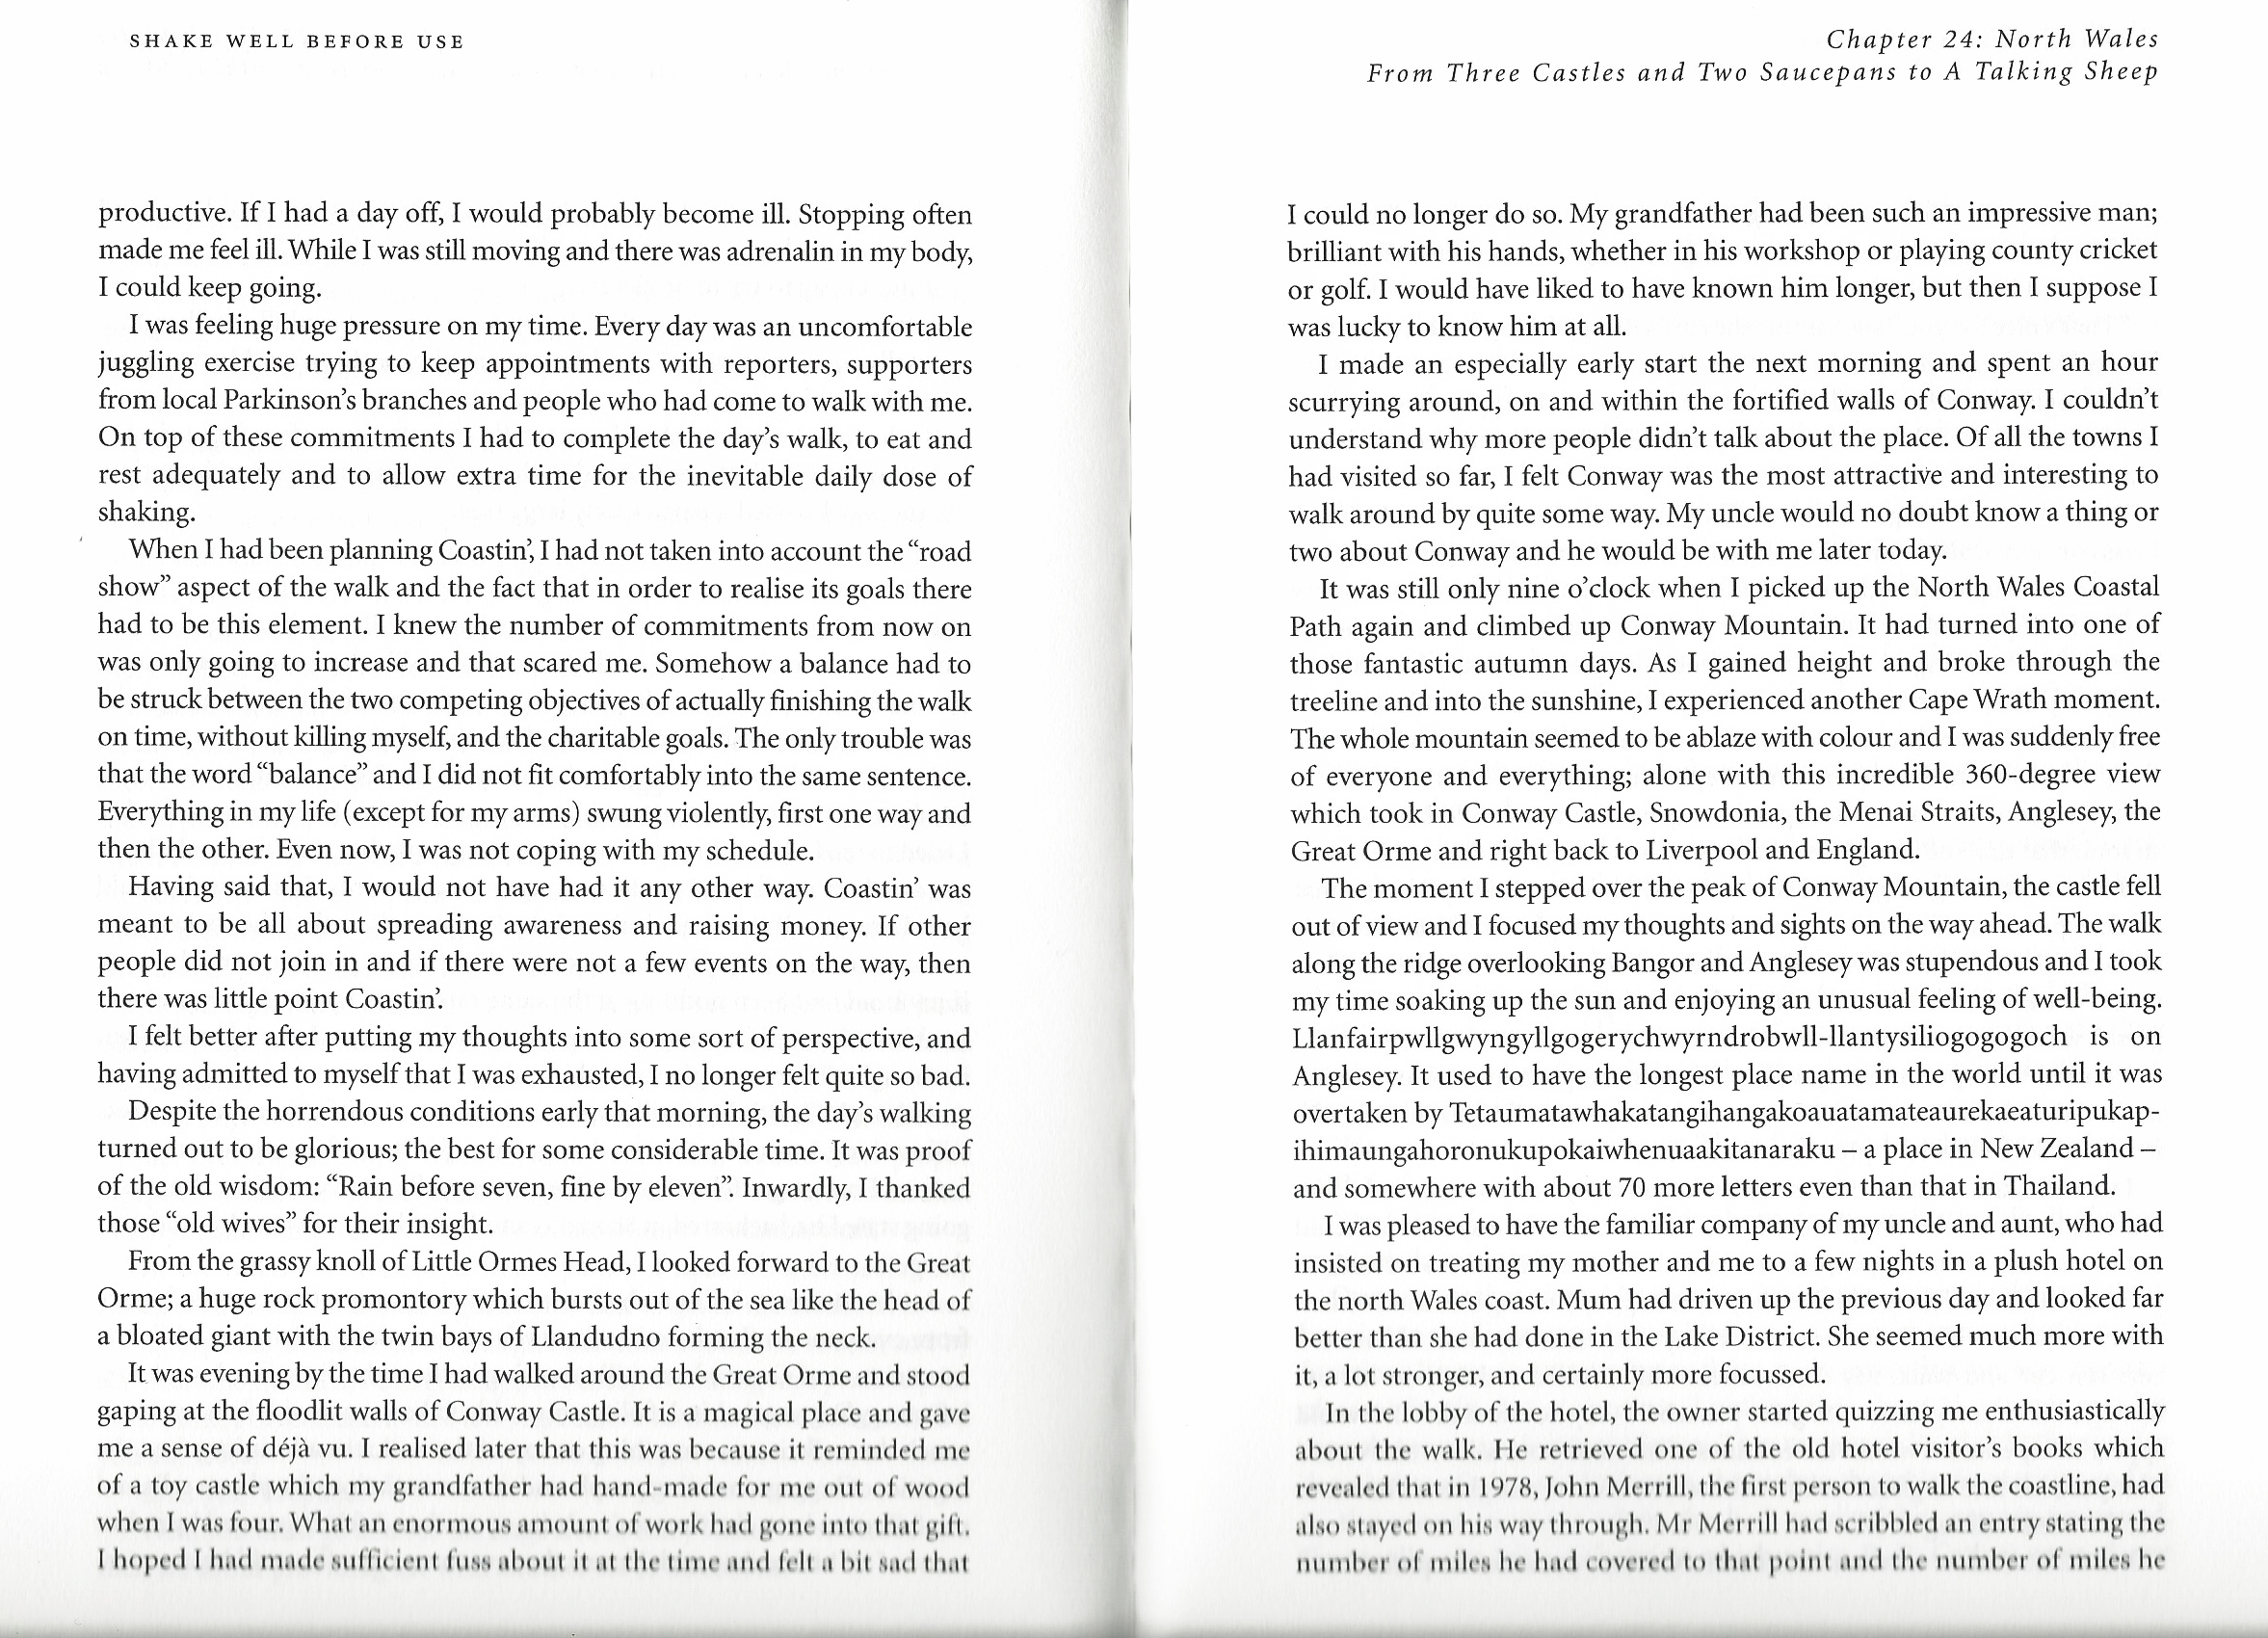 One of the major obstacles and challenges that faced Tom Isaacs, encountered at the same time while battling his Parkinsons, was the peole that he met on his walk. Some understood, few did. However it was more the kindness and willing to do good, that the author found of much help. Sadly, much of the book relates a very different experience